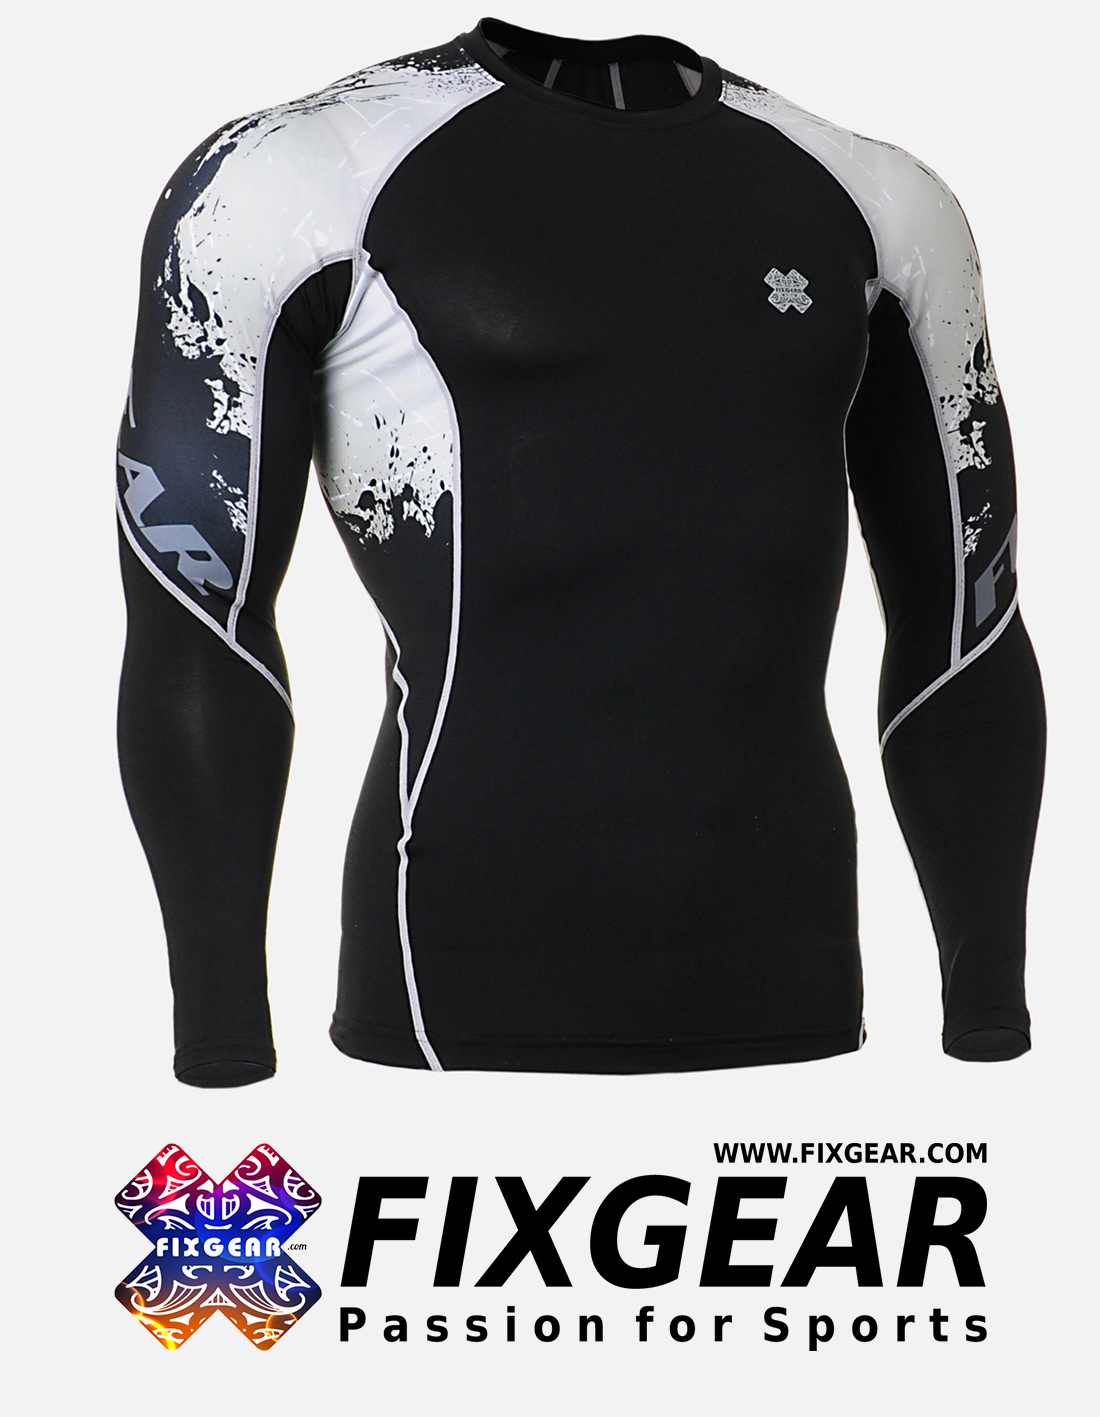 FIXGEAR C2L-B39 Compression Base Layer Shirt